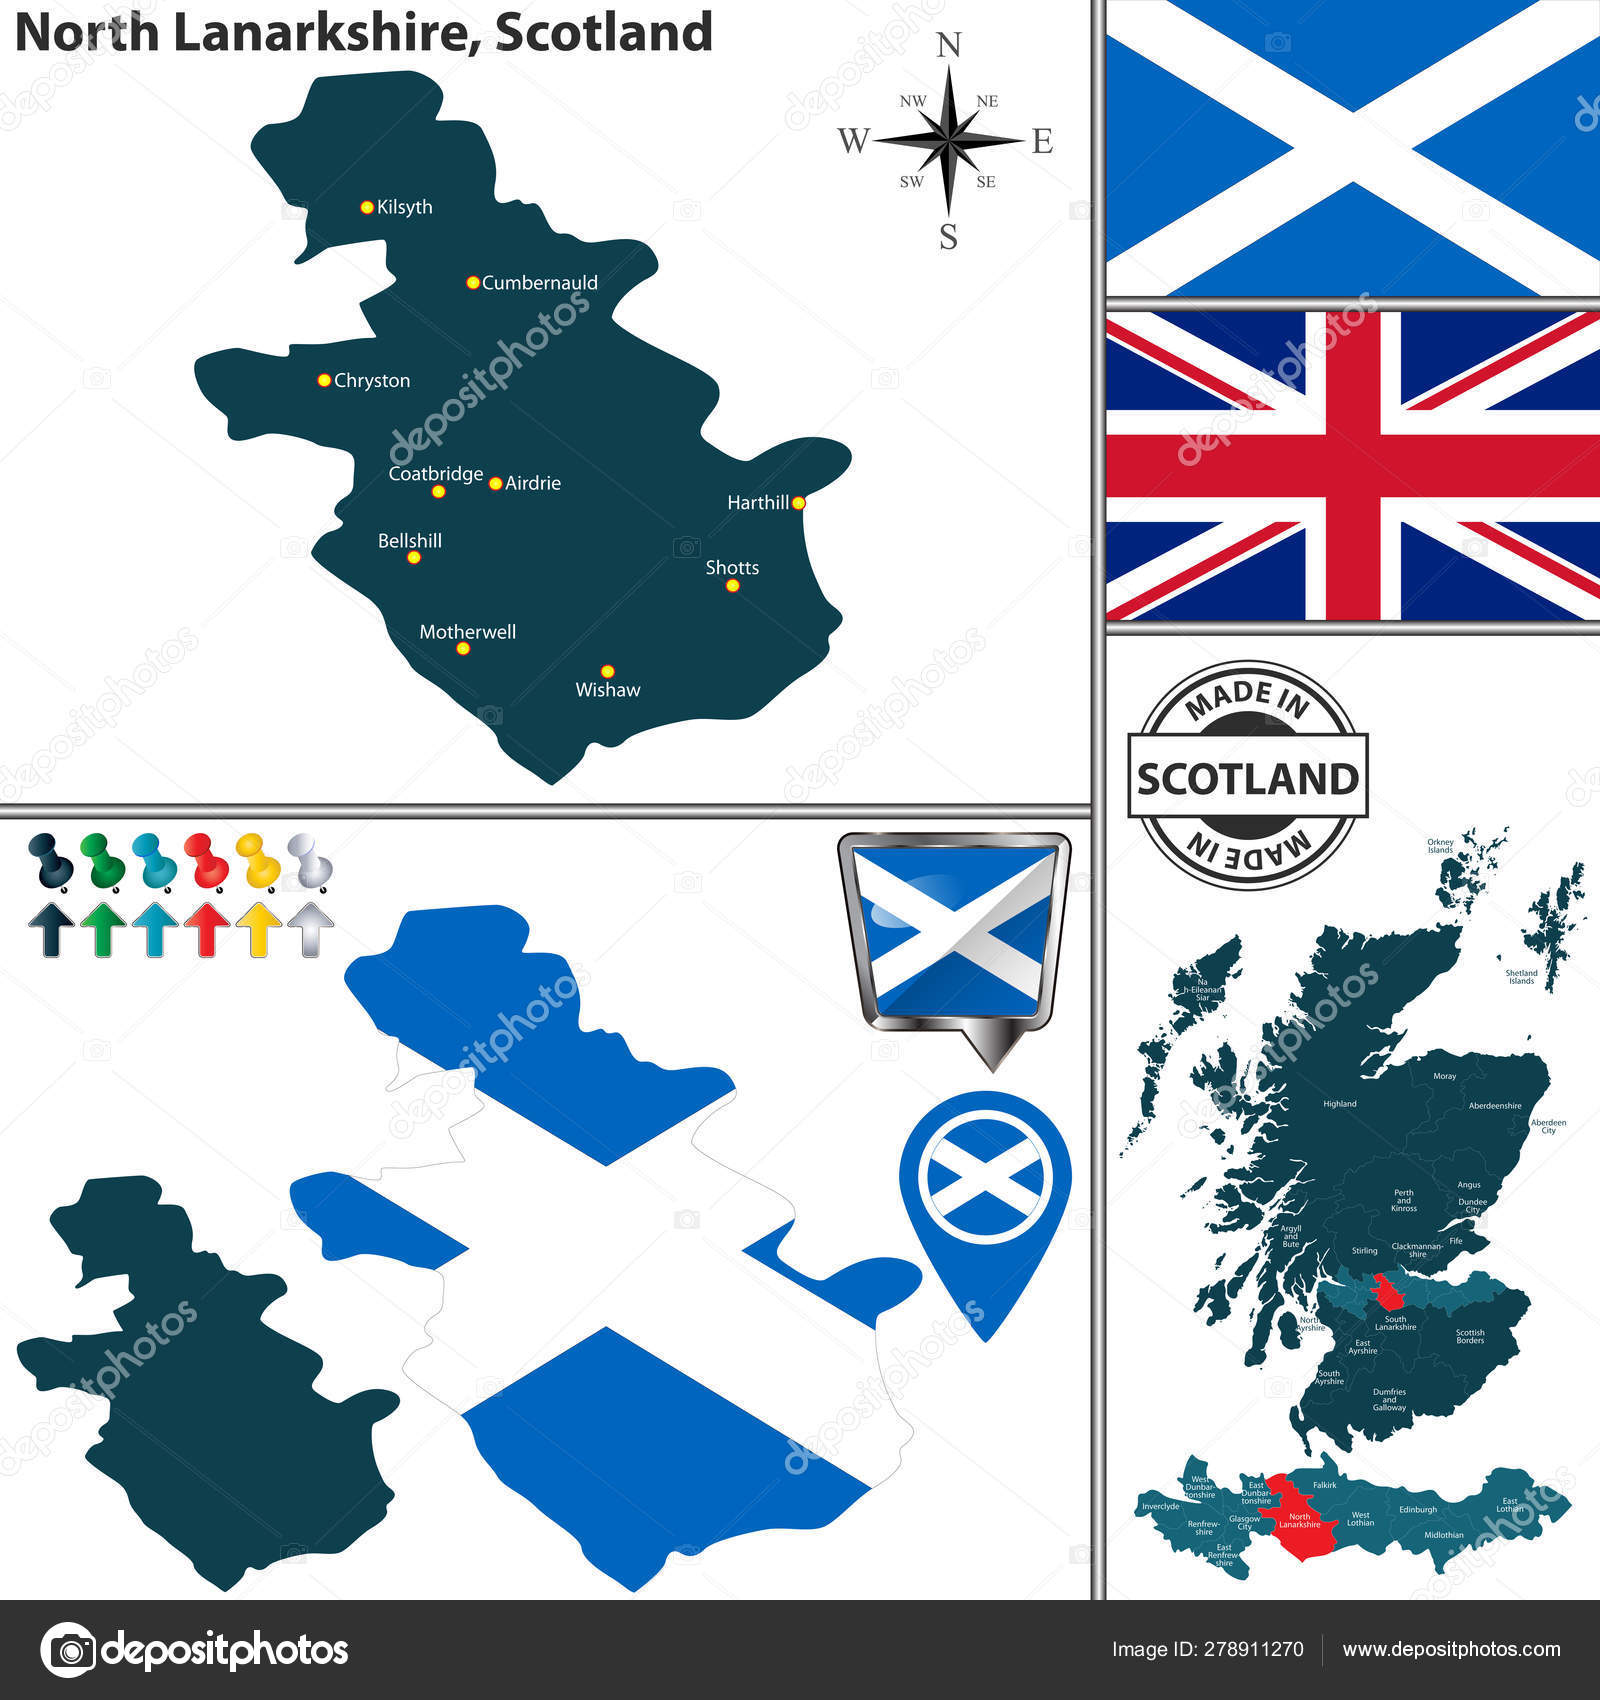 Map of North Lanarkshire, Scotland — Stock Vector © sateda ... Map Of Airdrie Scotland on map east lothian scotland, excelsior stadium, airdrie public library, lanark high church glasgow scotland, map of airdrie alberta, map of glasgow ky, airdrie-bathgate rail link, airdrie and shotts, airdrie public observatory, airdrie lanarkshire scotland,